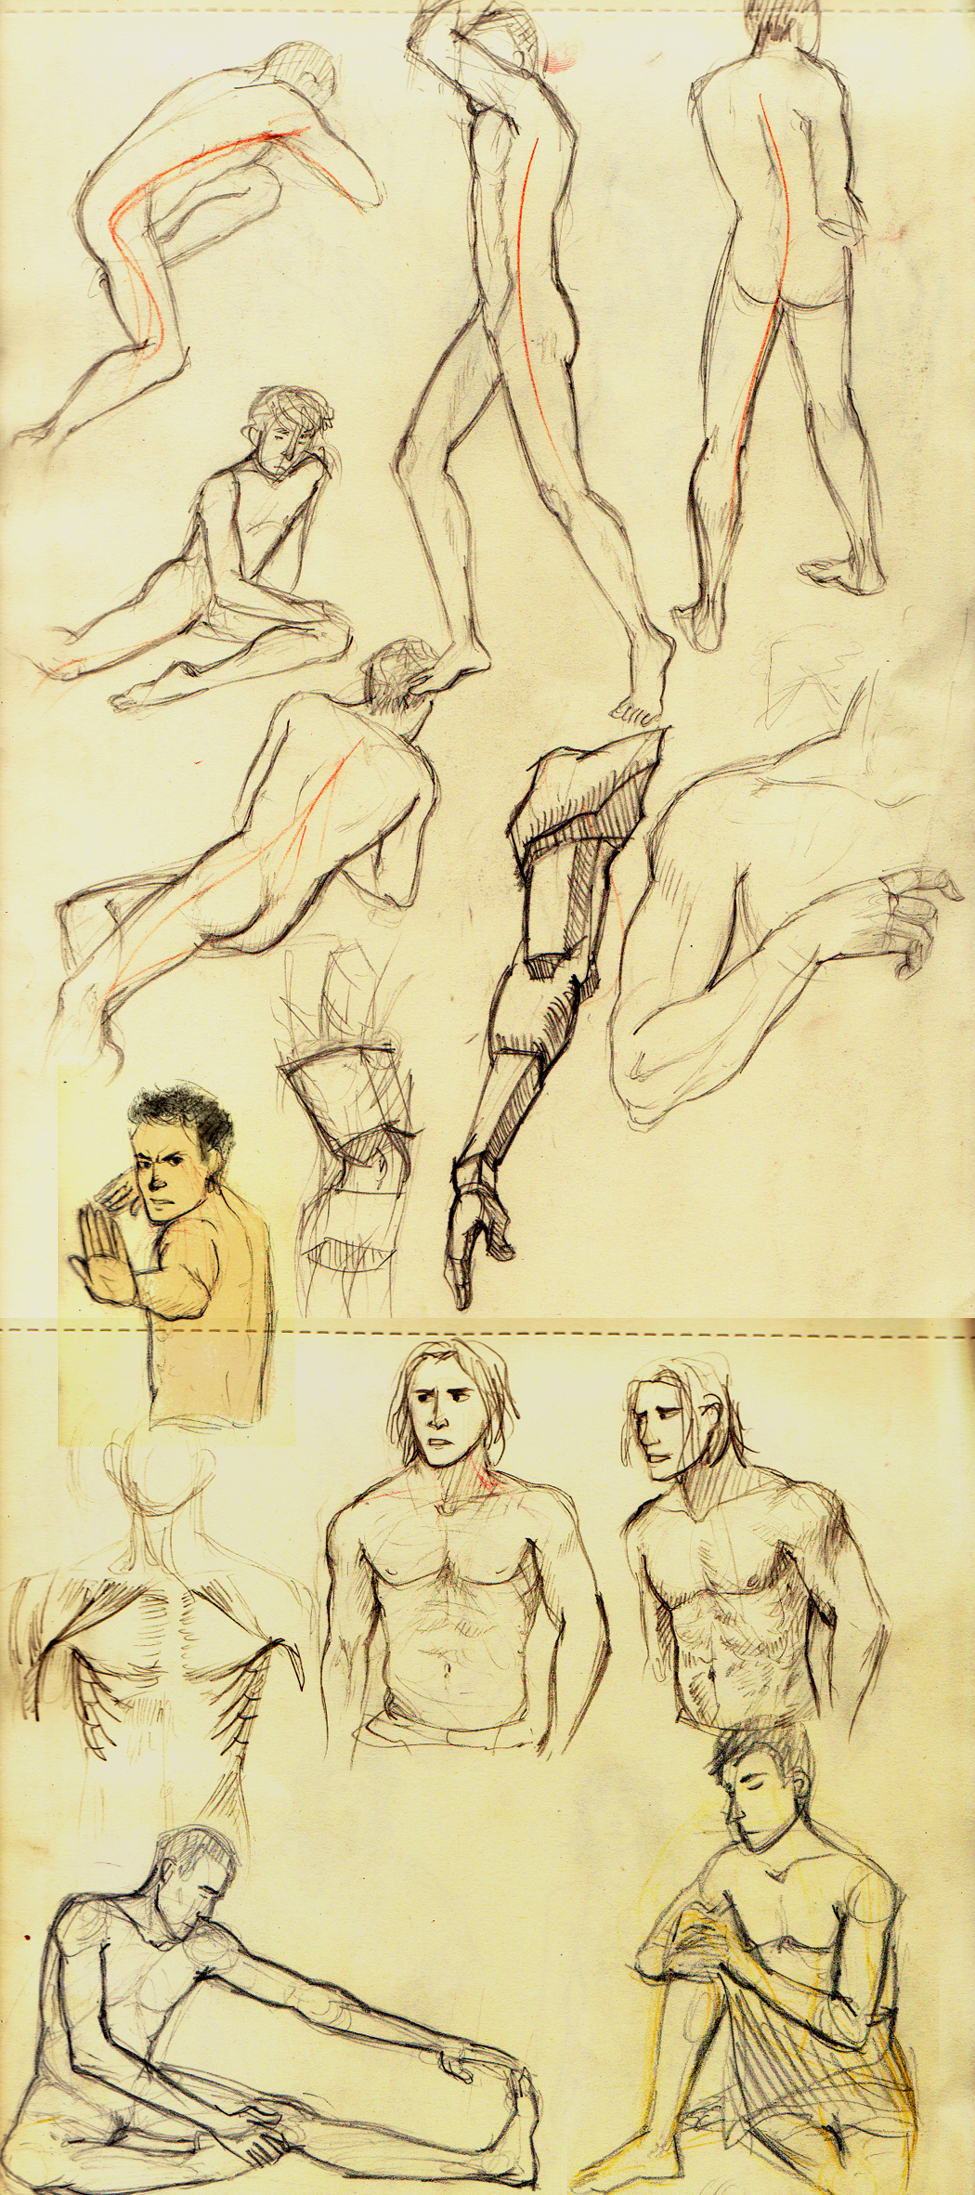 Nude male figure drawings by abibuu Nude art by ~Erika Gwendoline on deviantART